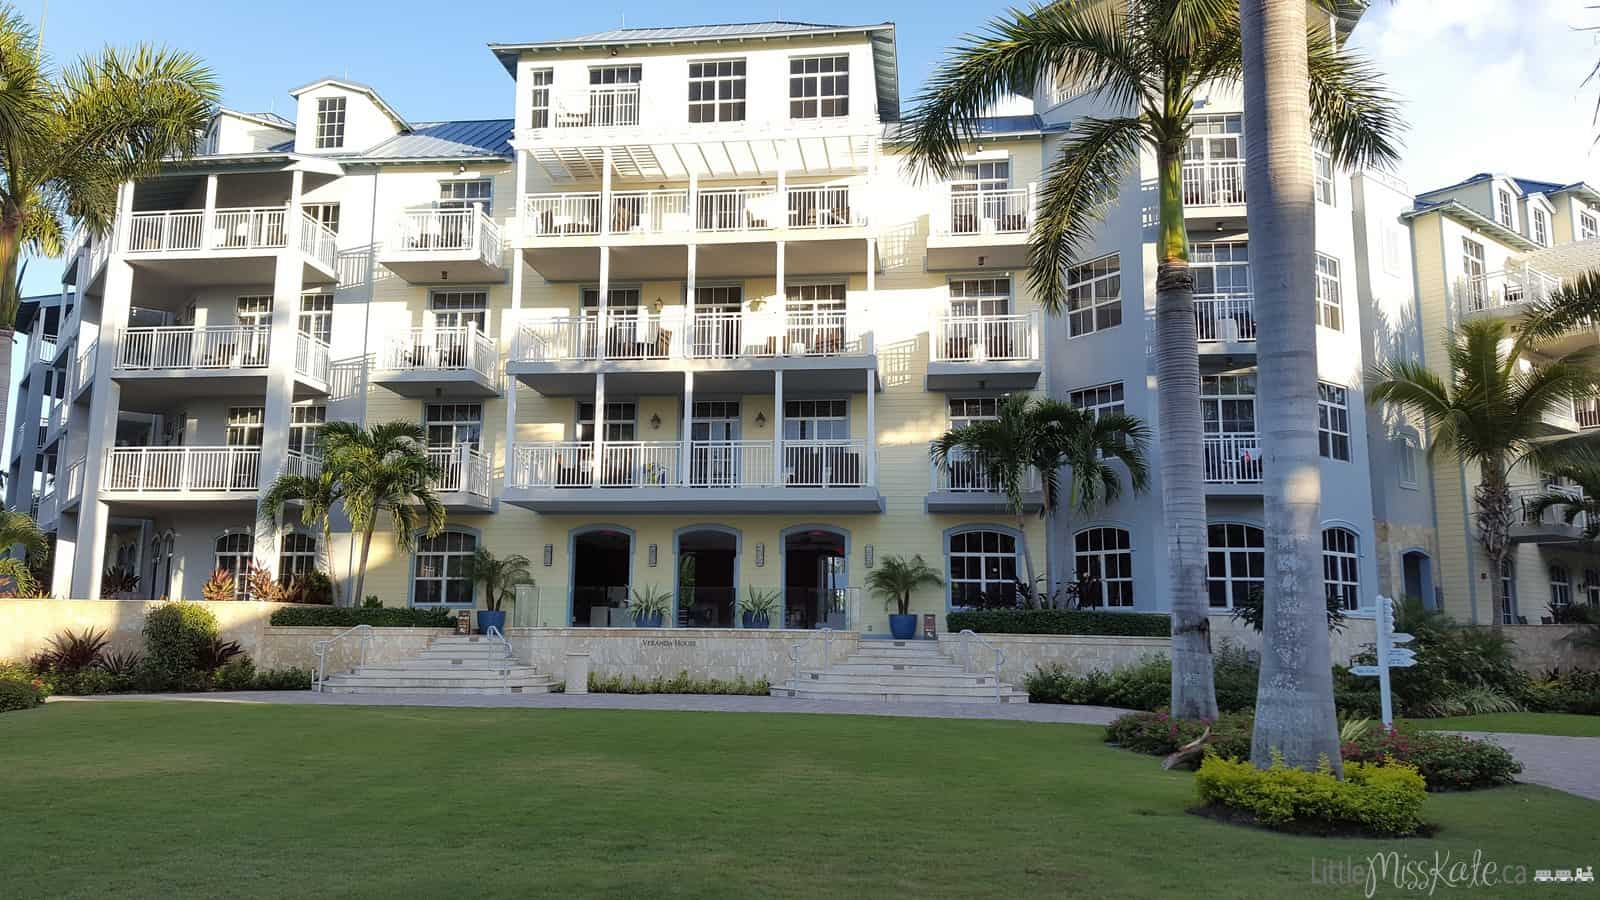 Beaches Resort Villages Key West Village 2 bedroom suite Turks and Caicos via www.littlemisskate.ca